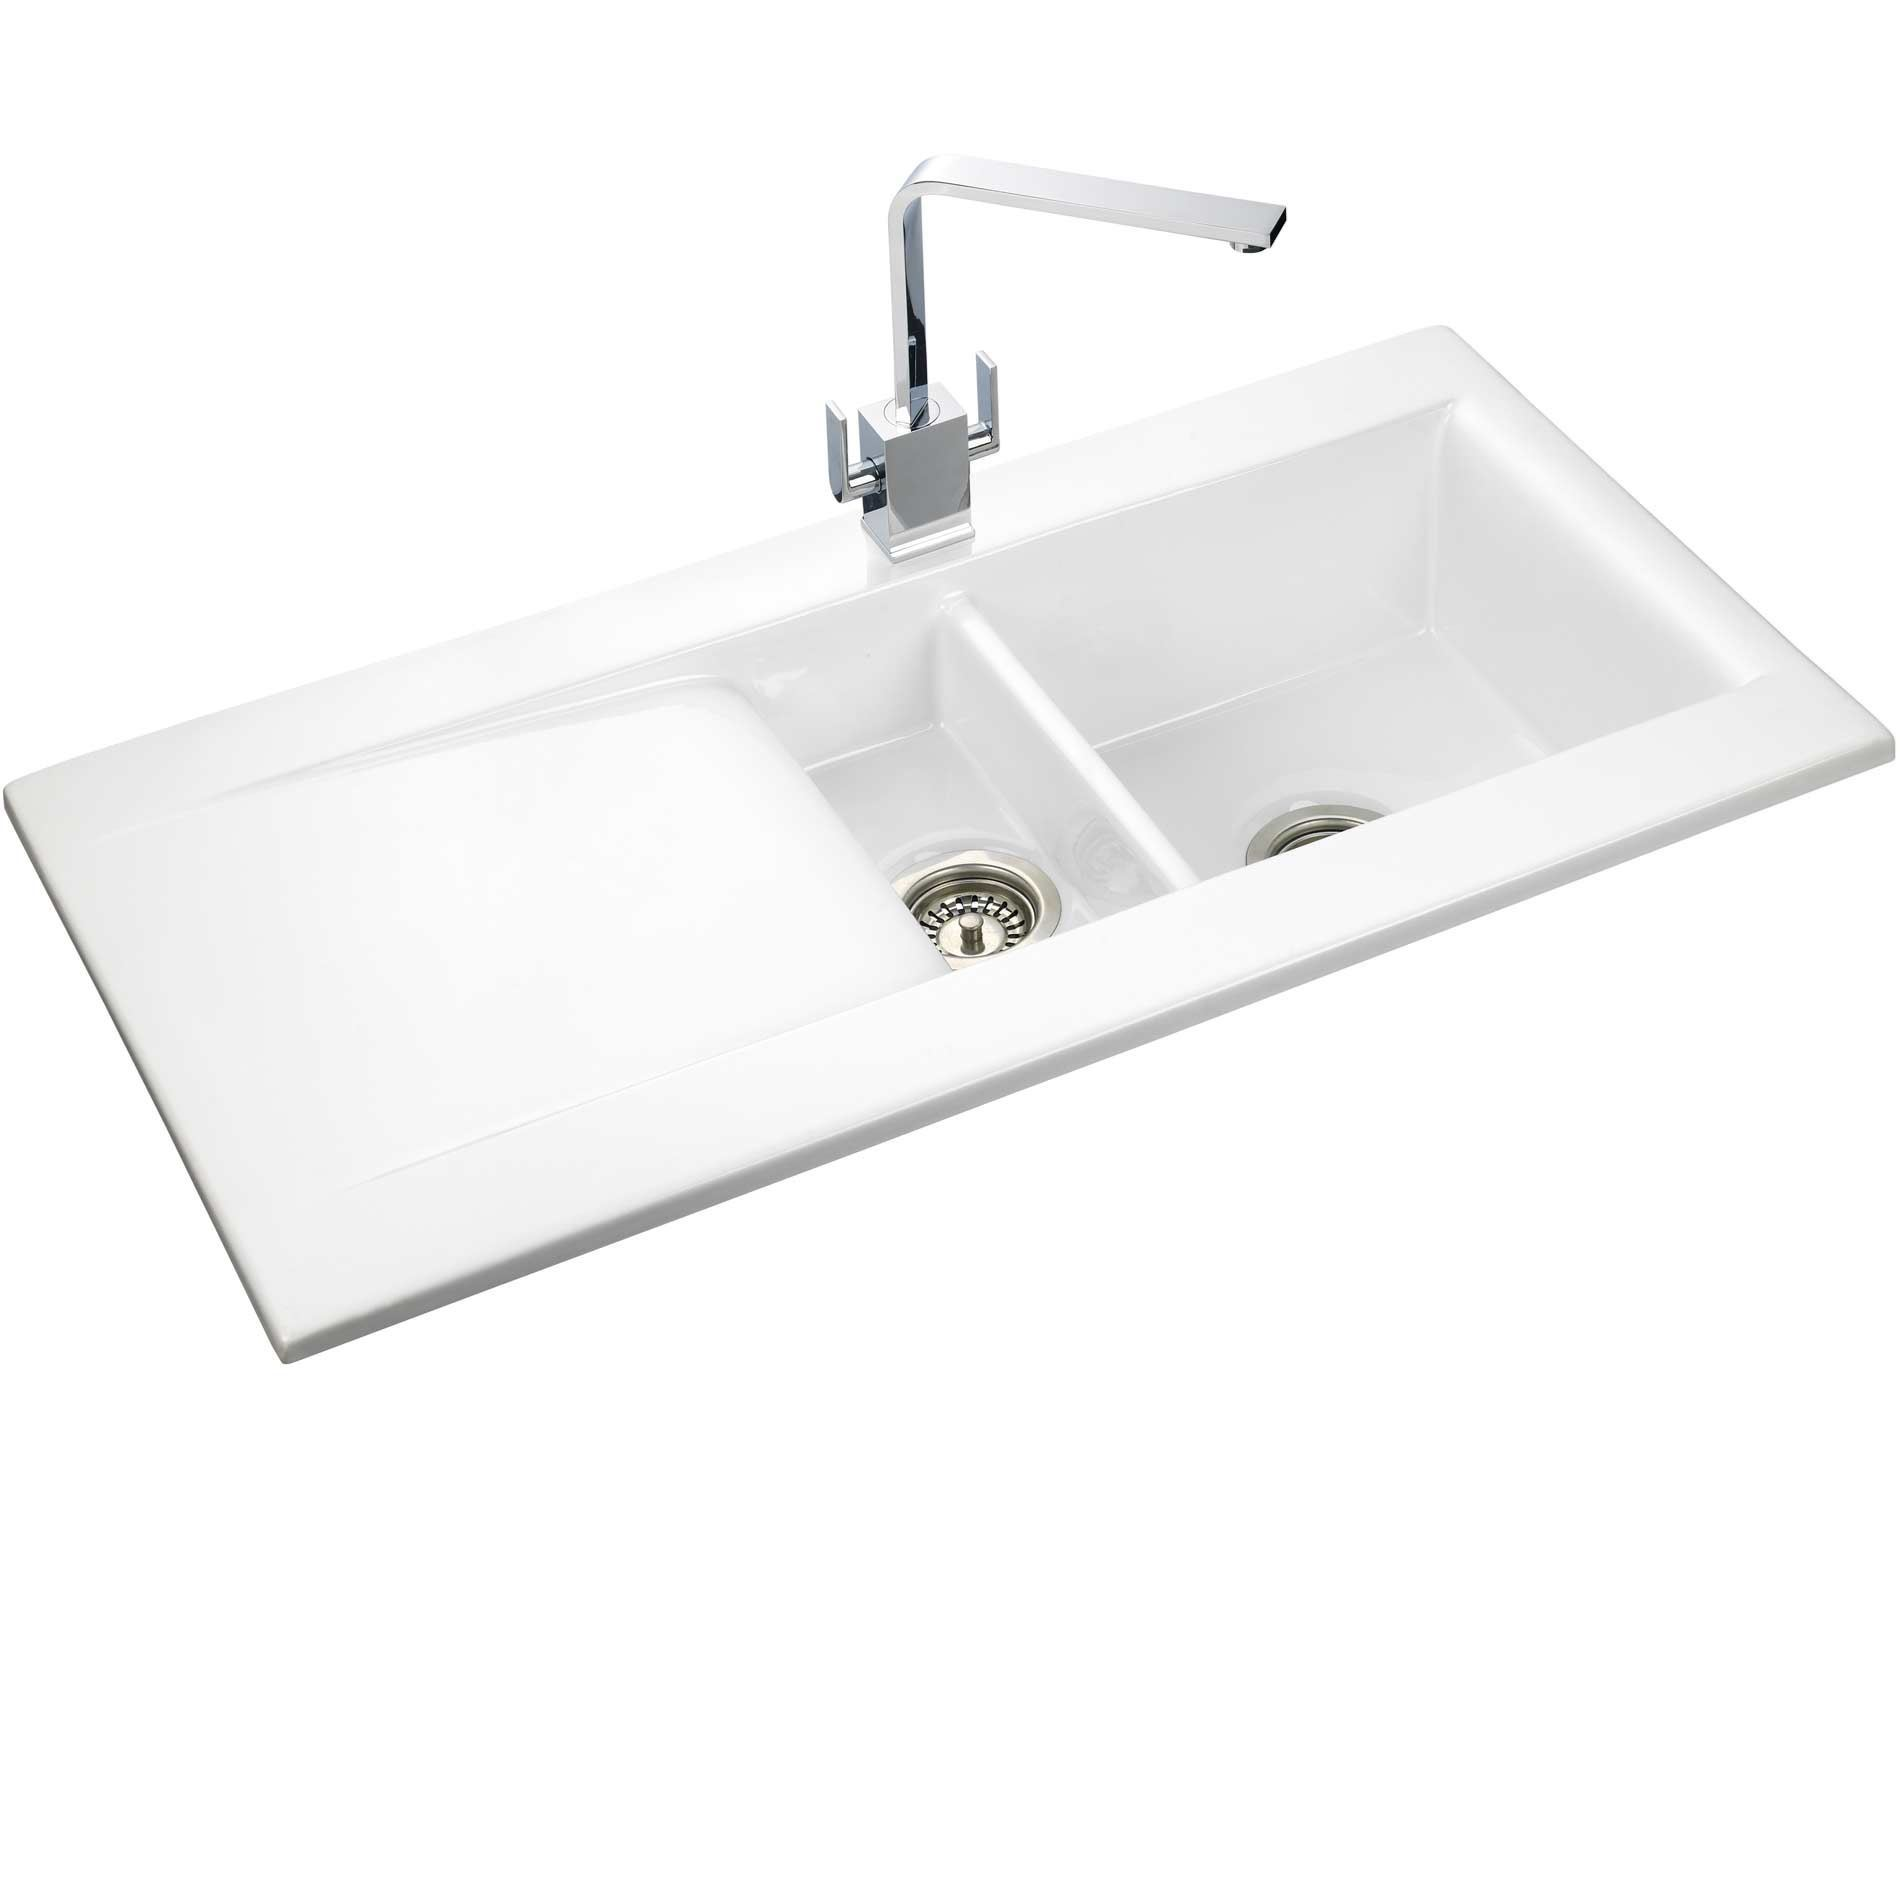 Rangemaster Kitchen Sinks Rangemaster nevada 1 5 white ceramic sink cnv2wh kitchen sinks taps picture of nevada 1 5 white ceramic sink cnv2wh workwithnaturefo